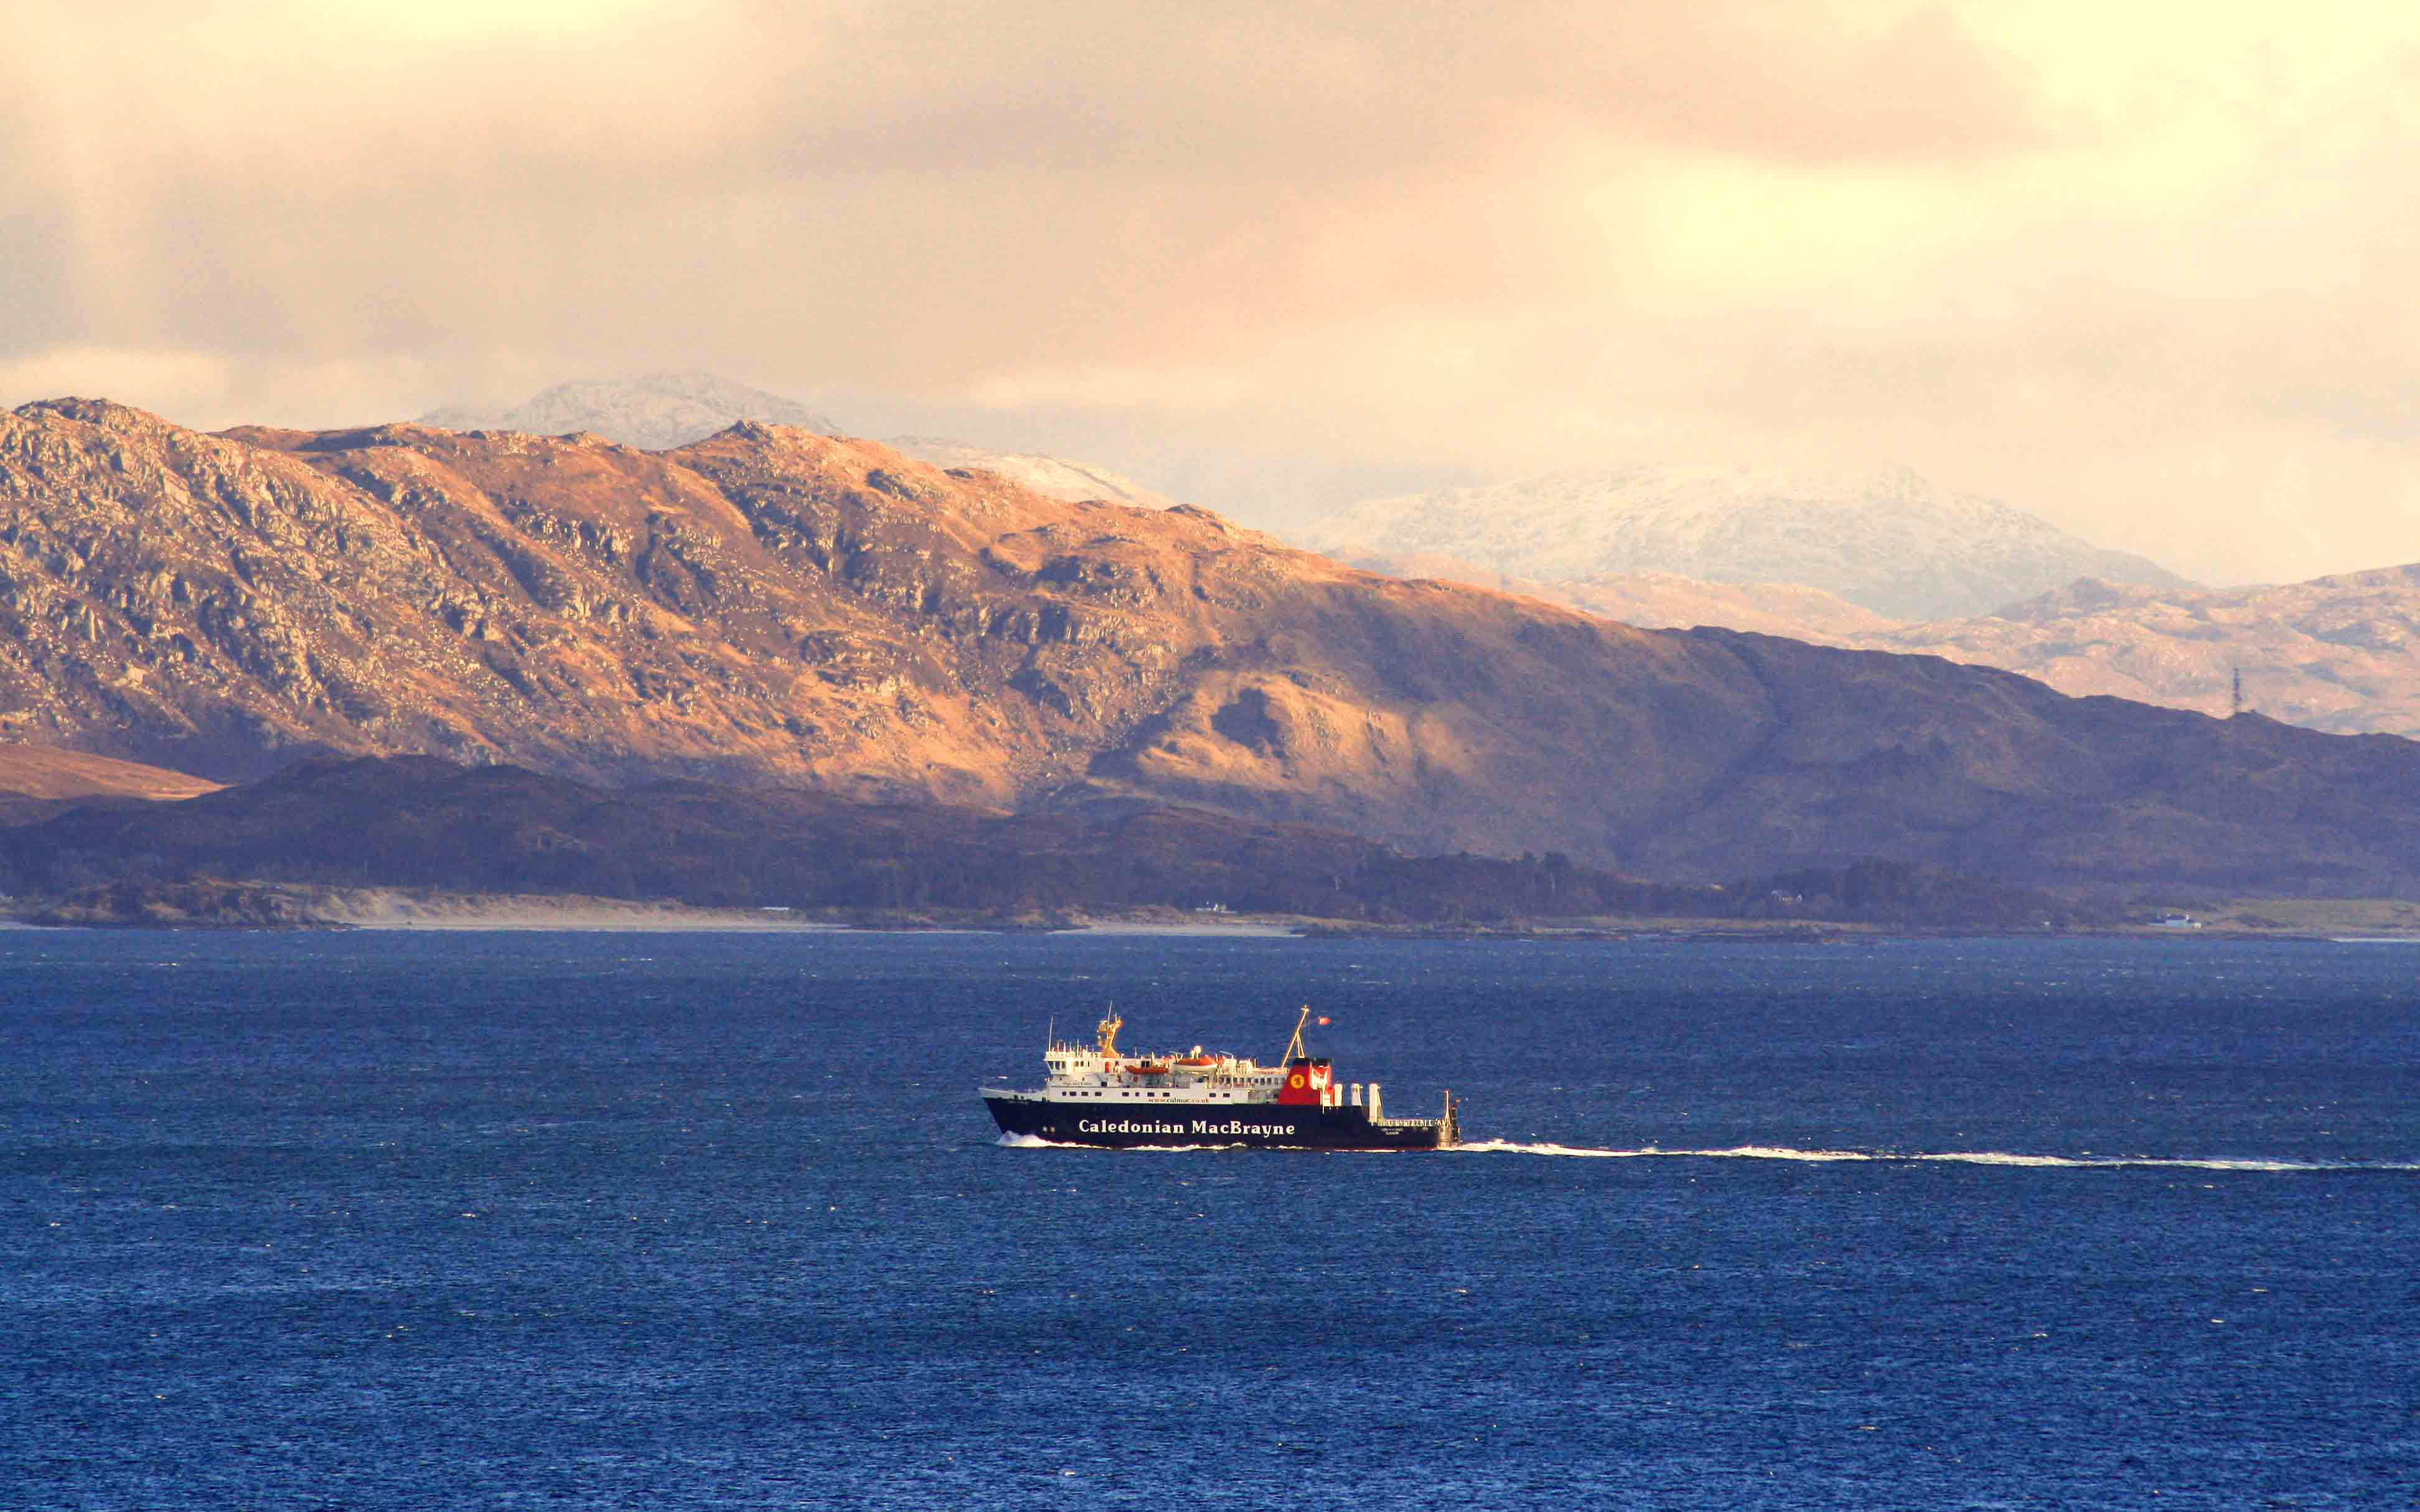 Lord of the Isles in the Sound of Sleat (Ships of CalMac)